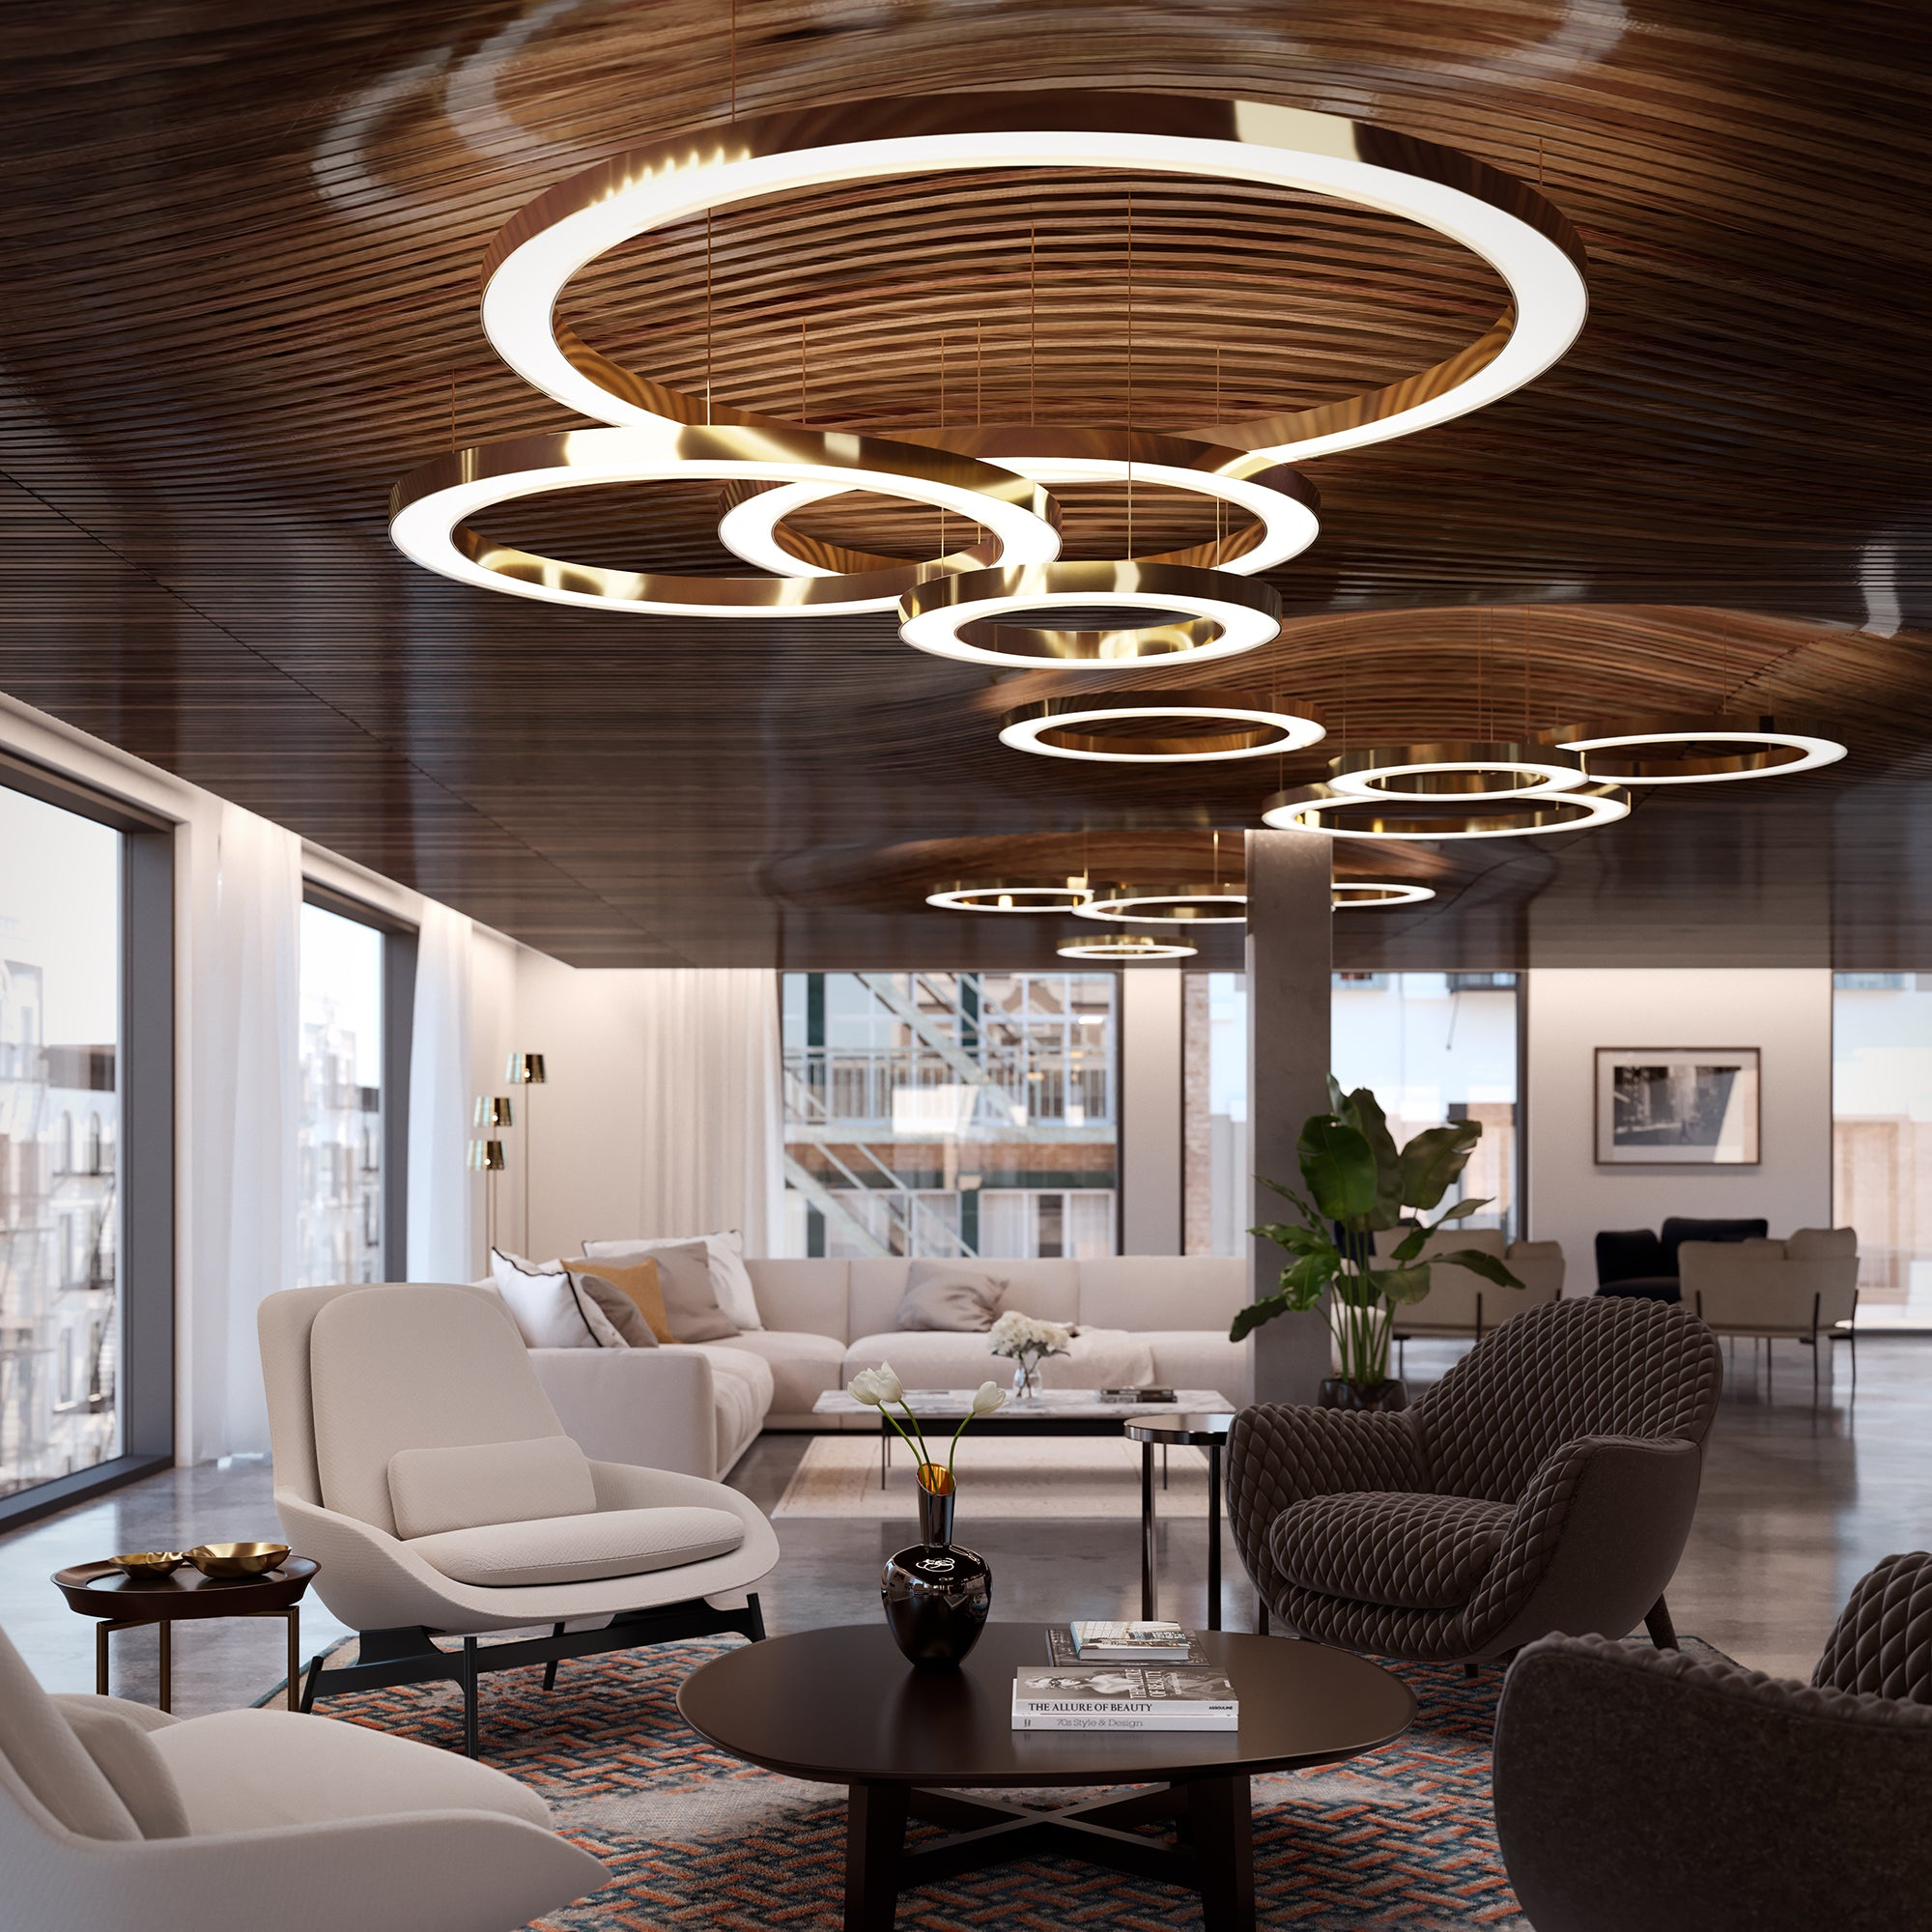 Improve Interior Design Product Sourcing With 3d Home: Cameron Design House